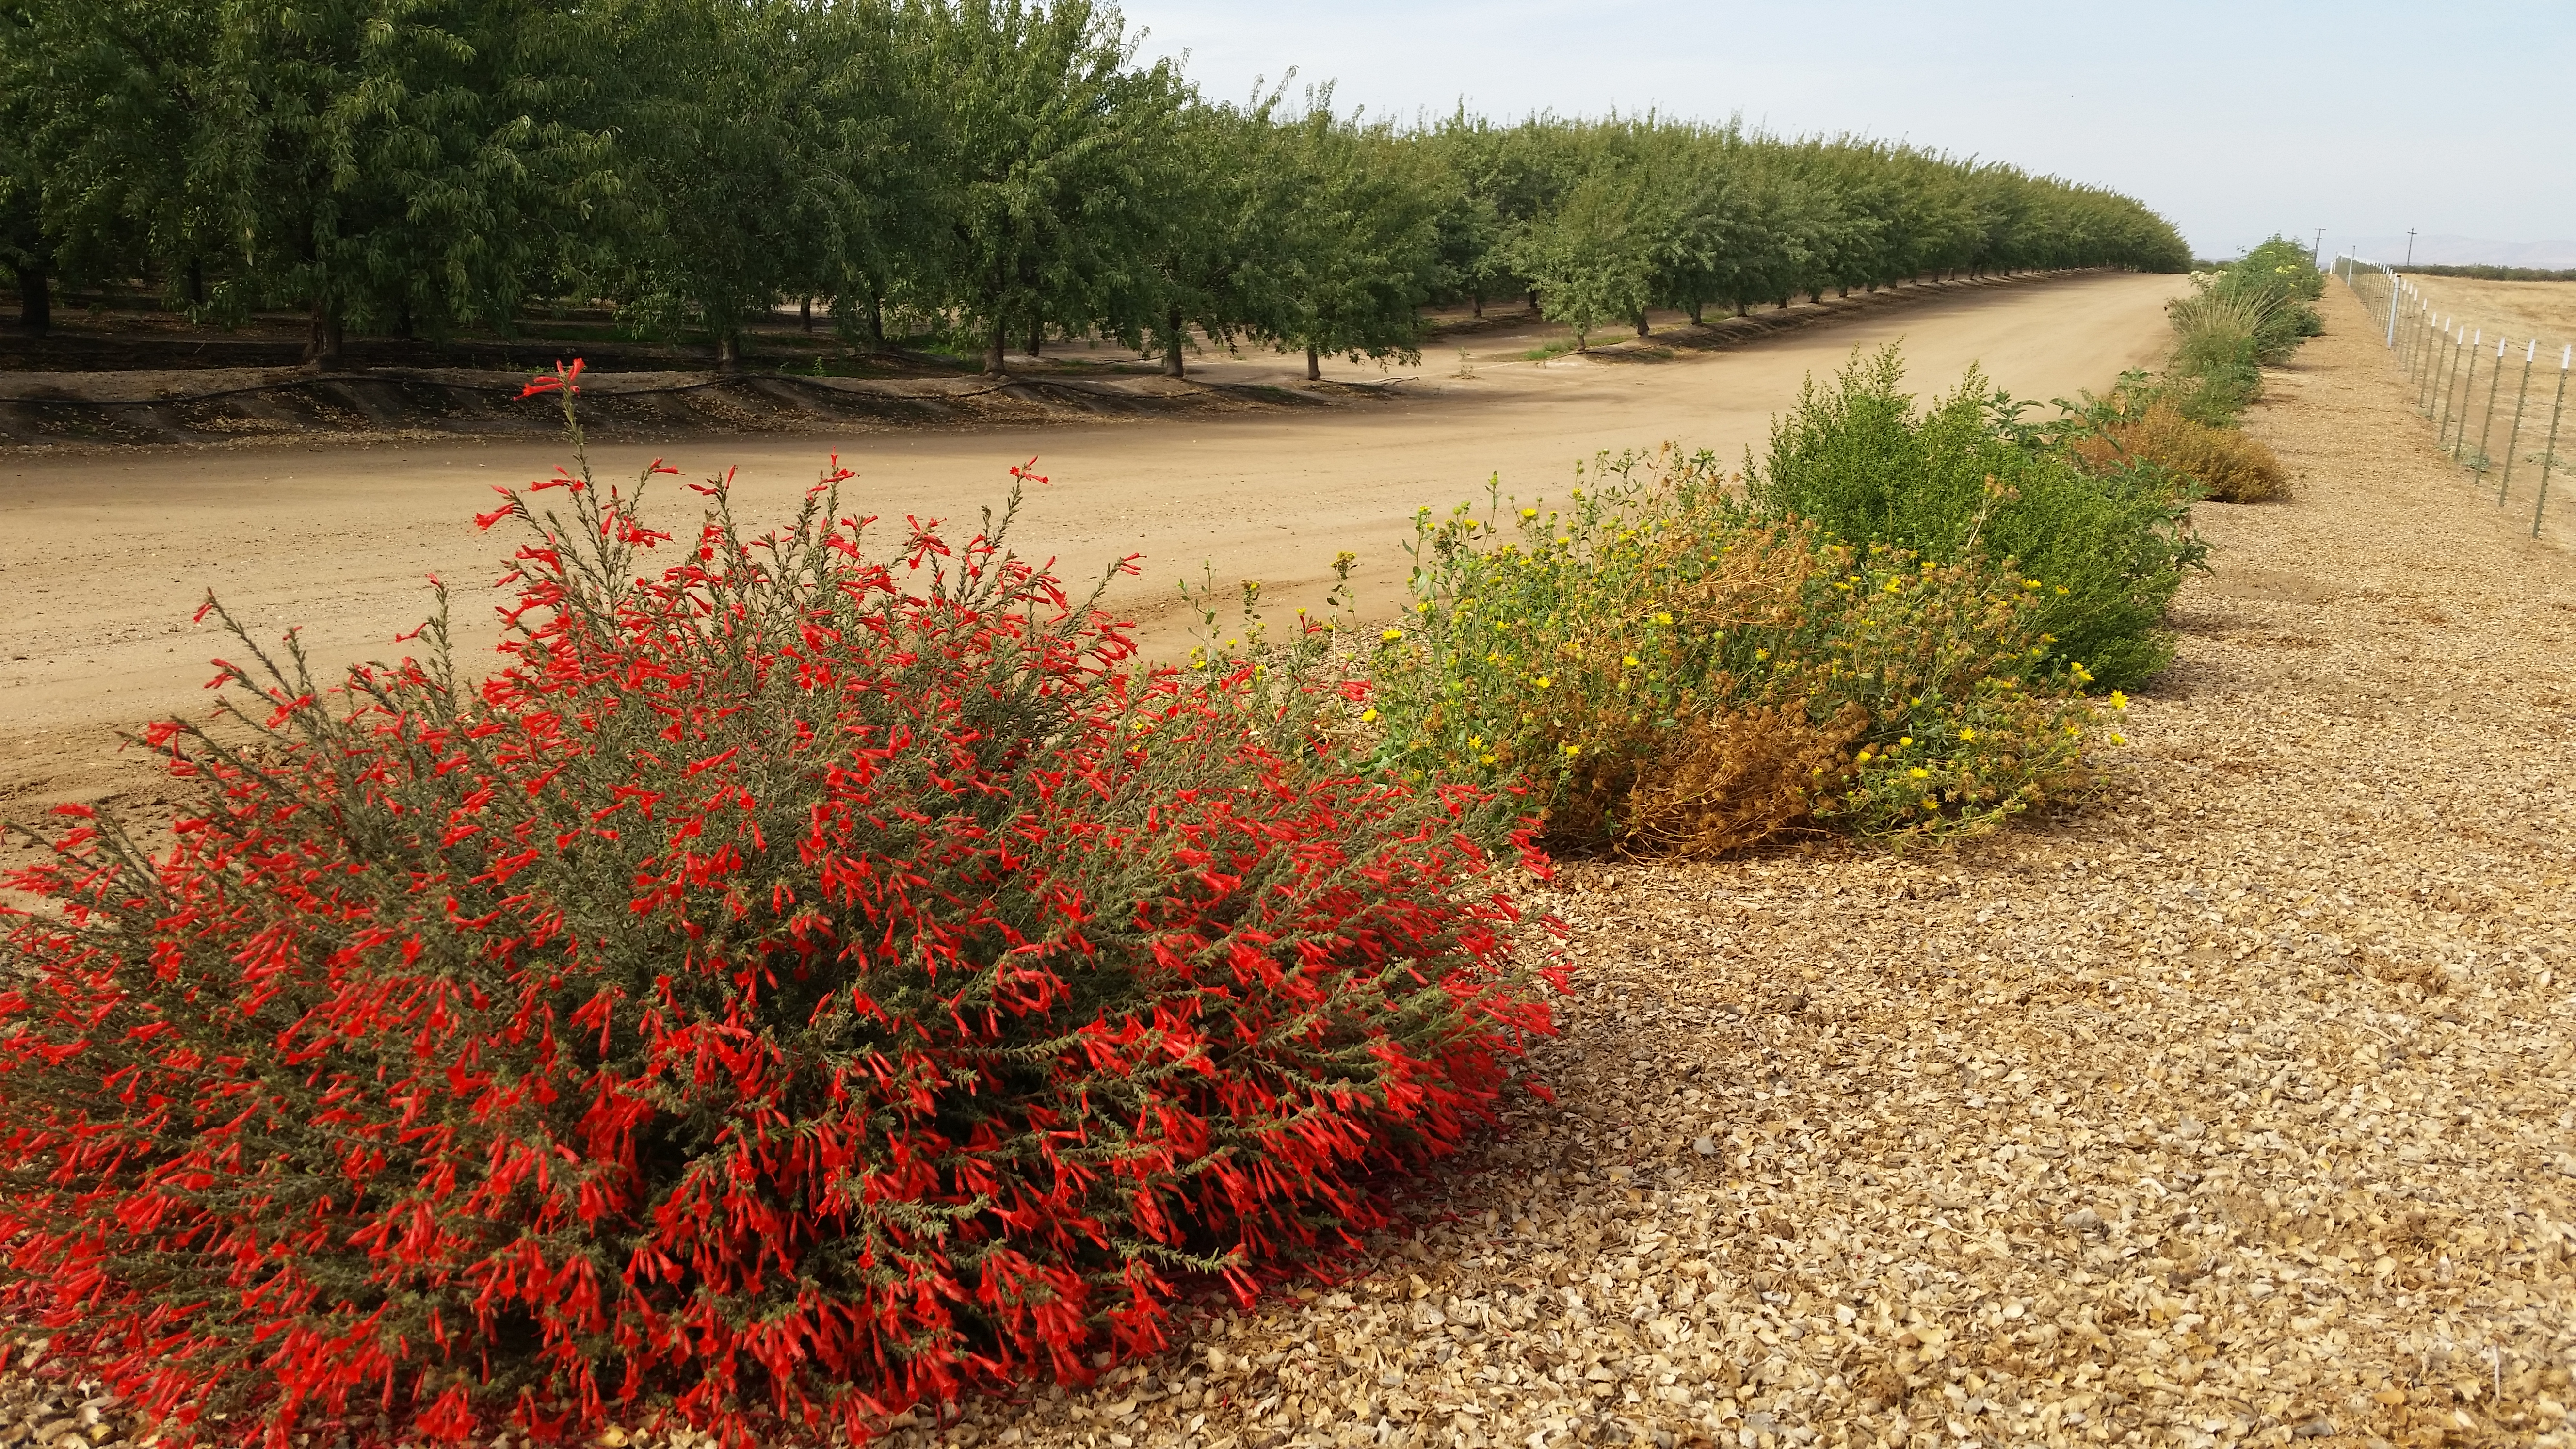 A line of colorful, flowering plants, including a bush with red blossoms in the foreground, recedes into the distance. Parallel to this line are rows of trees in an orchard.